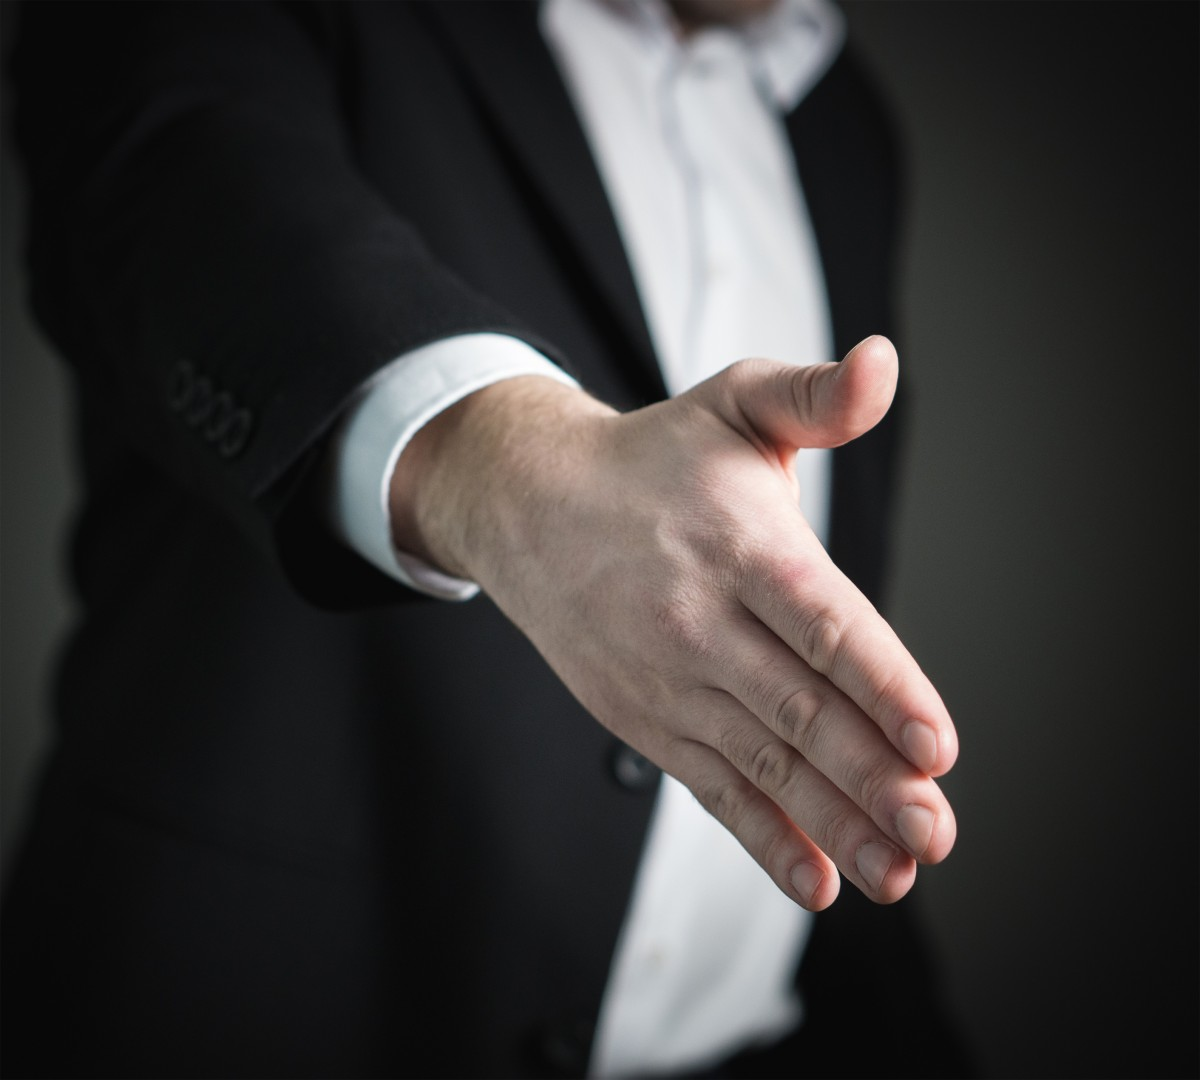 hand man finger giving corporate business arm groom settlement tuxedo partnership contract trade sale buy job handshake greeting sell congratulations give businessman marketing deal offer interaction cooperation agreement real estate agent sense hiring formal wear synergy collaboration job interview congrats